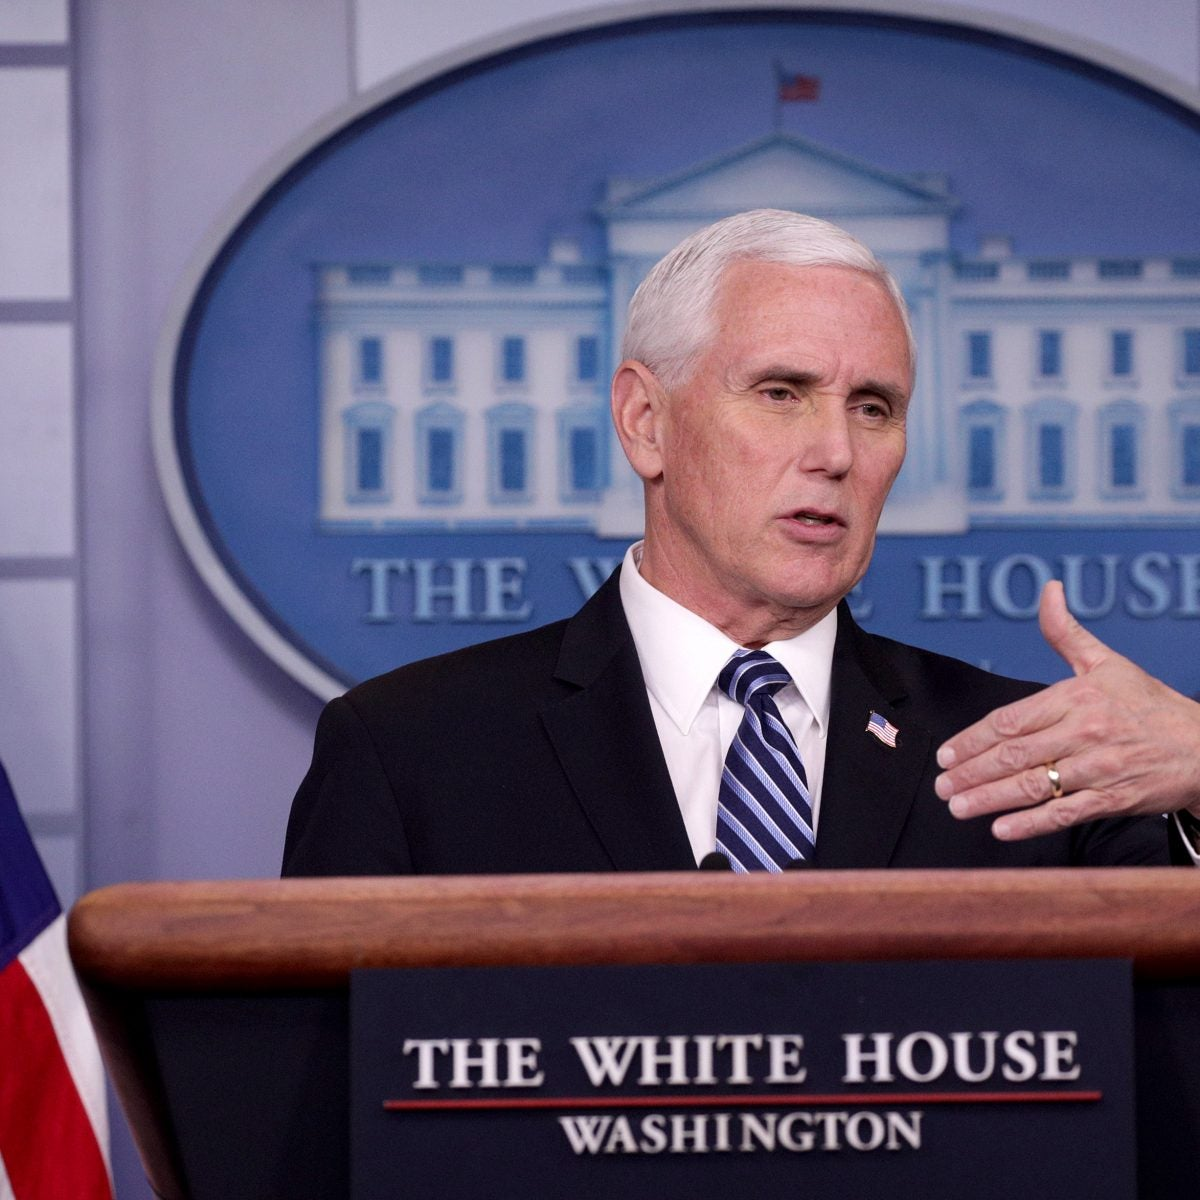 VP Mike Pence Didn't Wear A Mask While Speaking At Mayo Clinic